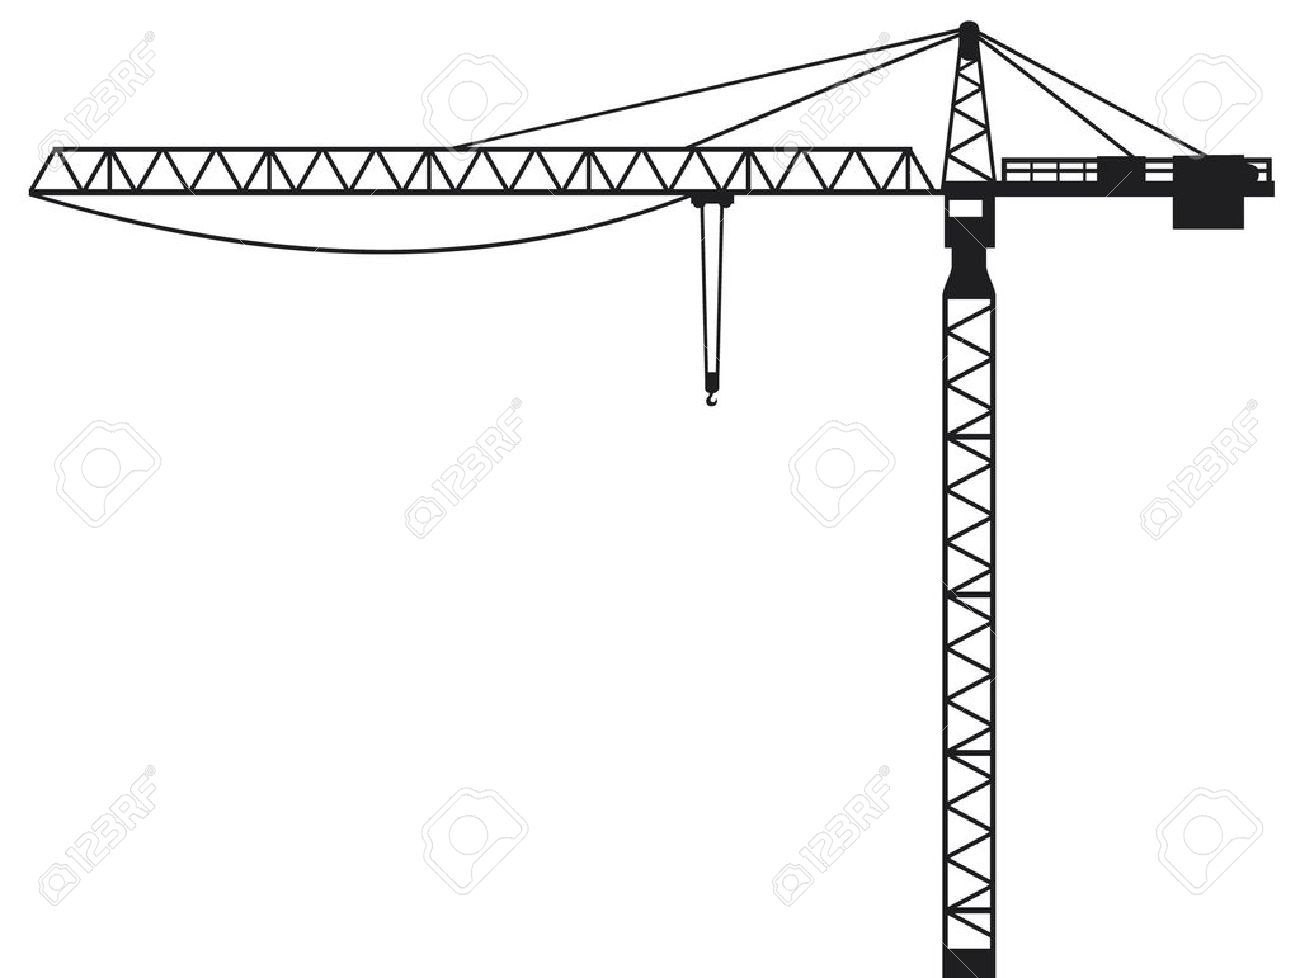 1300x978 Pin By Daniel Burke On Cranes Trusses And Bridges